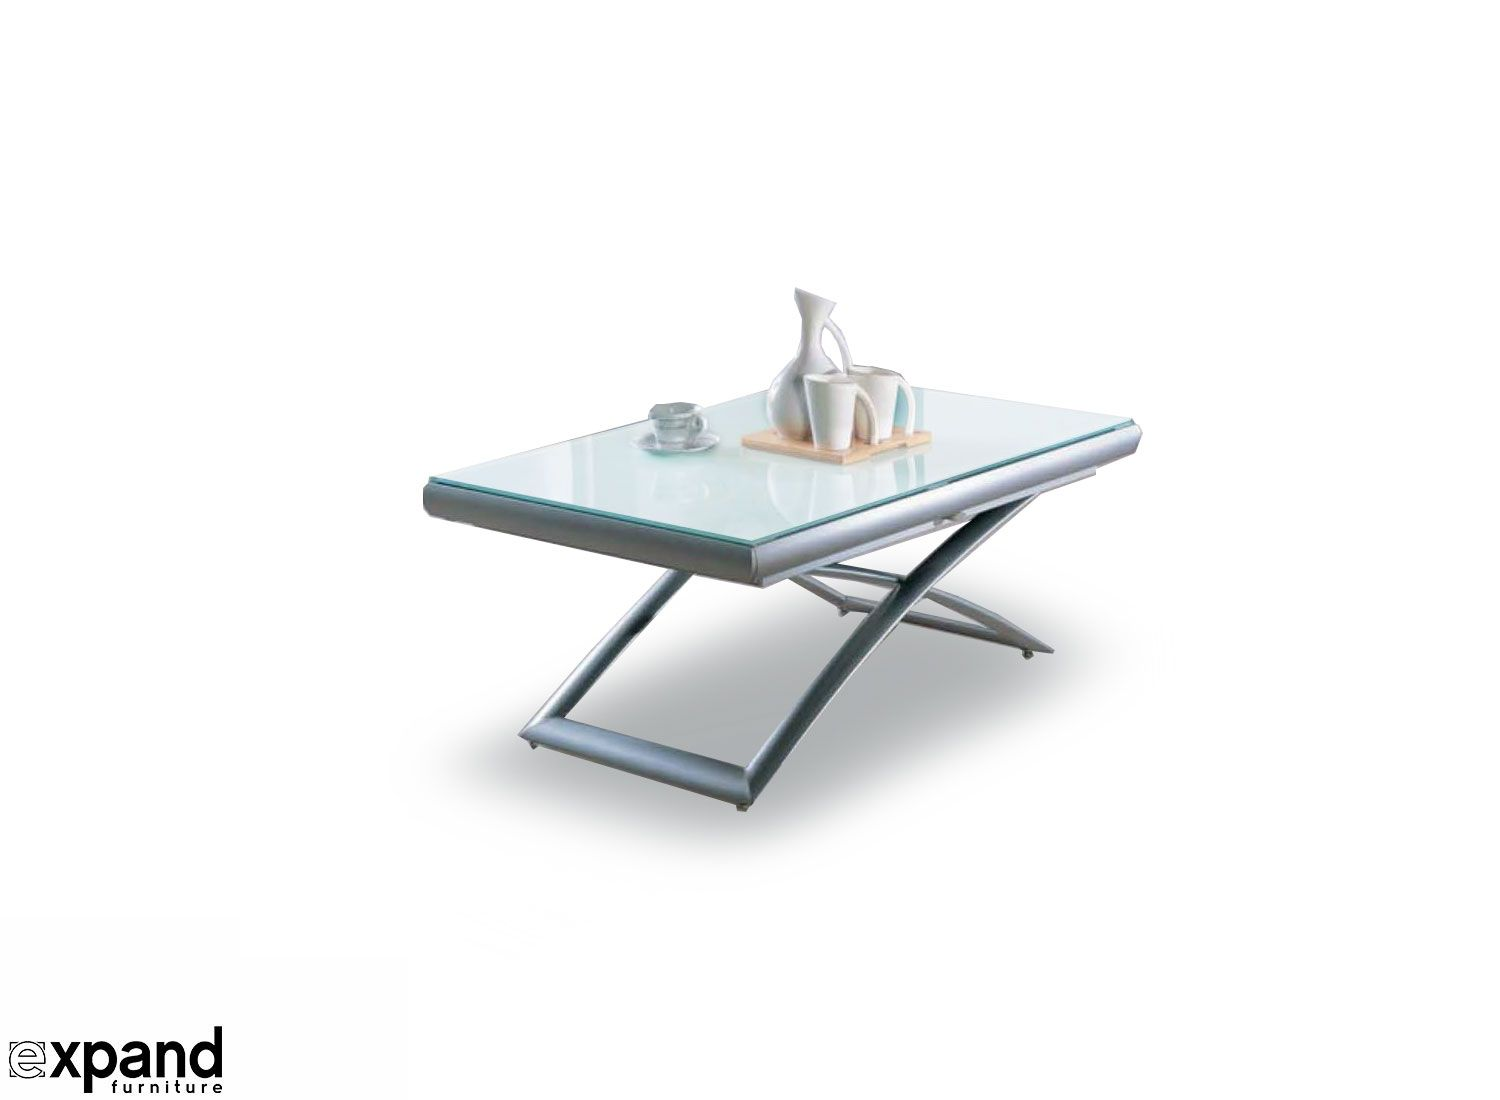 Transforming Extending Glass Table Expand Furniture Glass Table Expand Furniture Convertible Coffee Table [ 1100 x 1500 Pixel ]